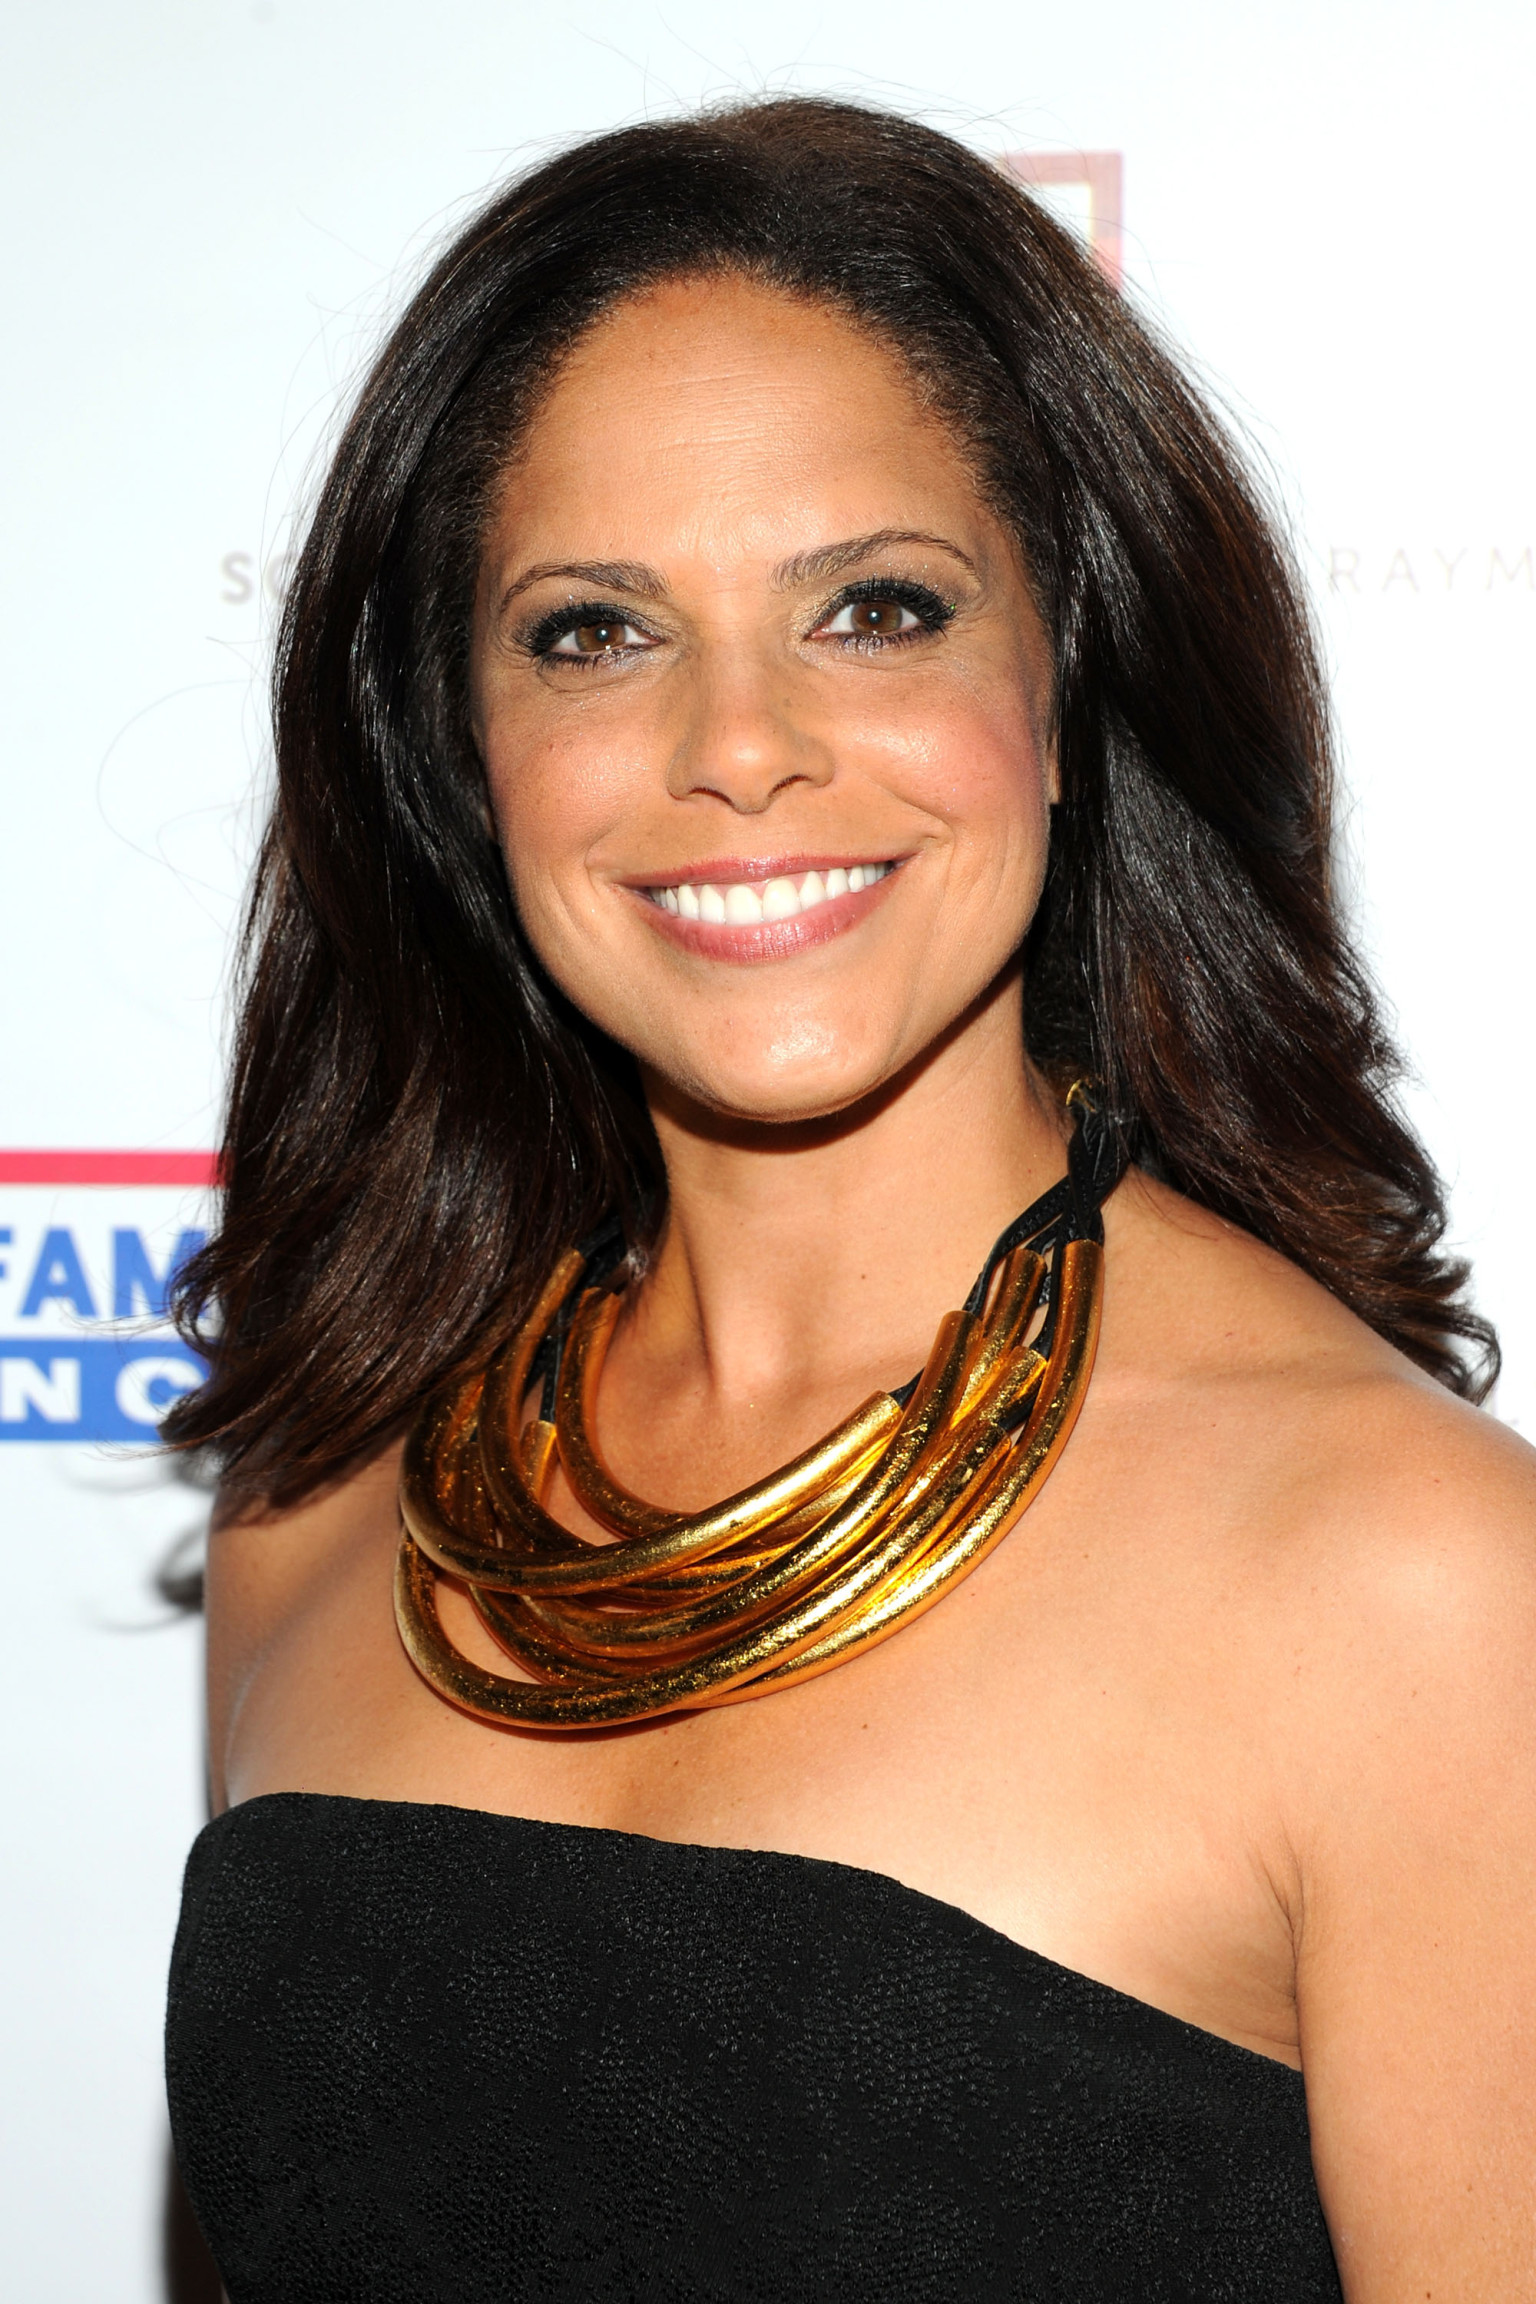 A Conversation With Soledad O'Brien of CNN and Starfish Media